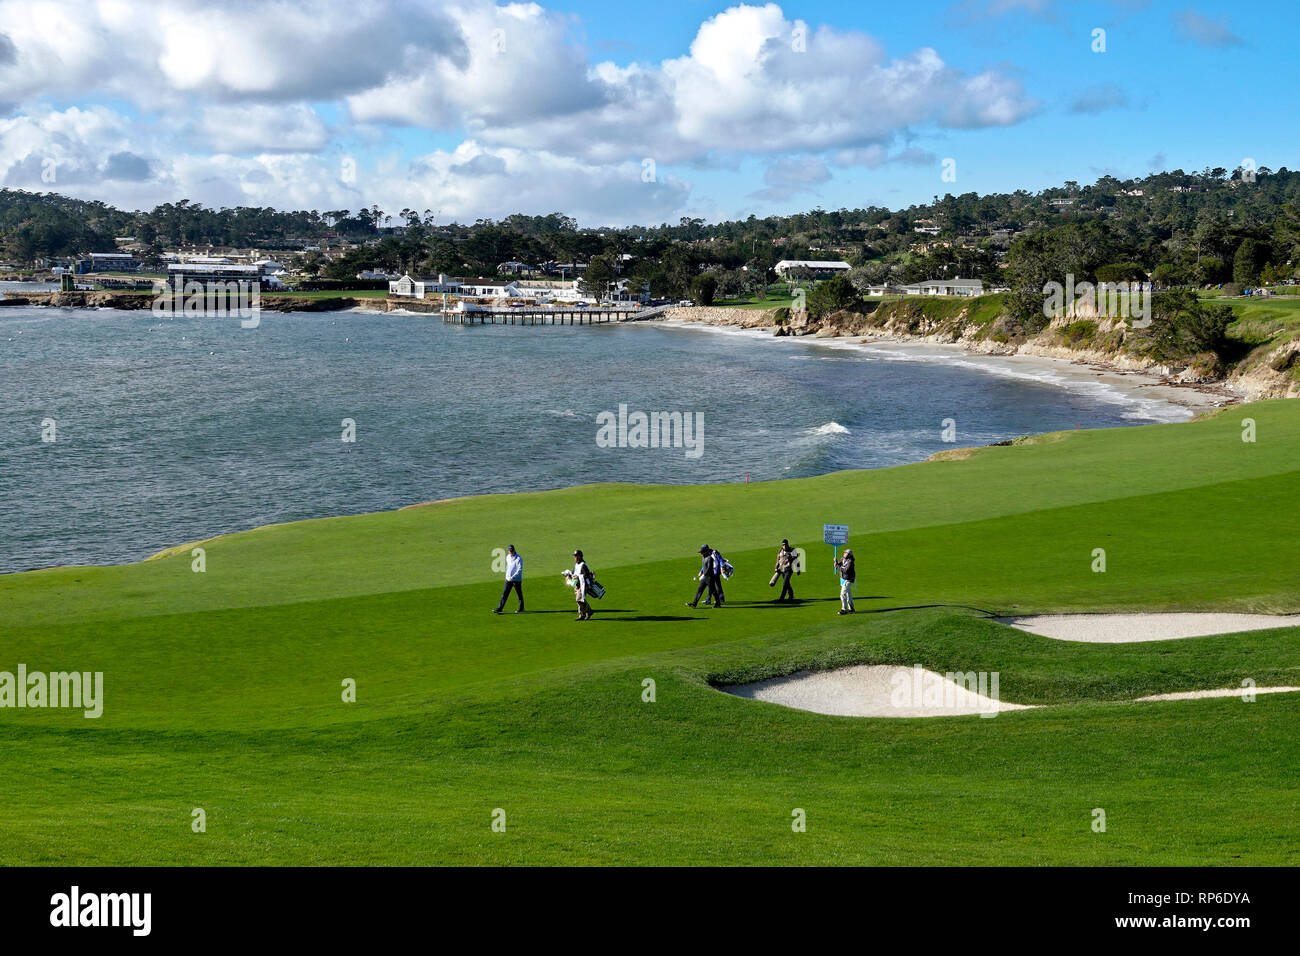 11th February, 2019  Pebble Beach Golf Links, CA, USA  The famous 18th hole at Pebble Beach Golf Course at  the AT&T Pebble Beach Pro-Am - will be the - Stock Image